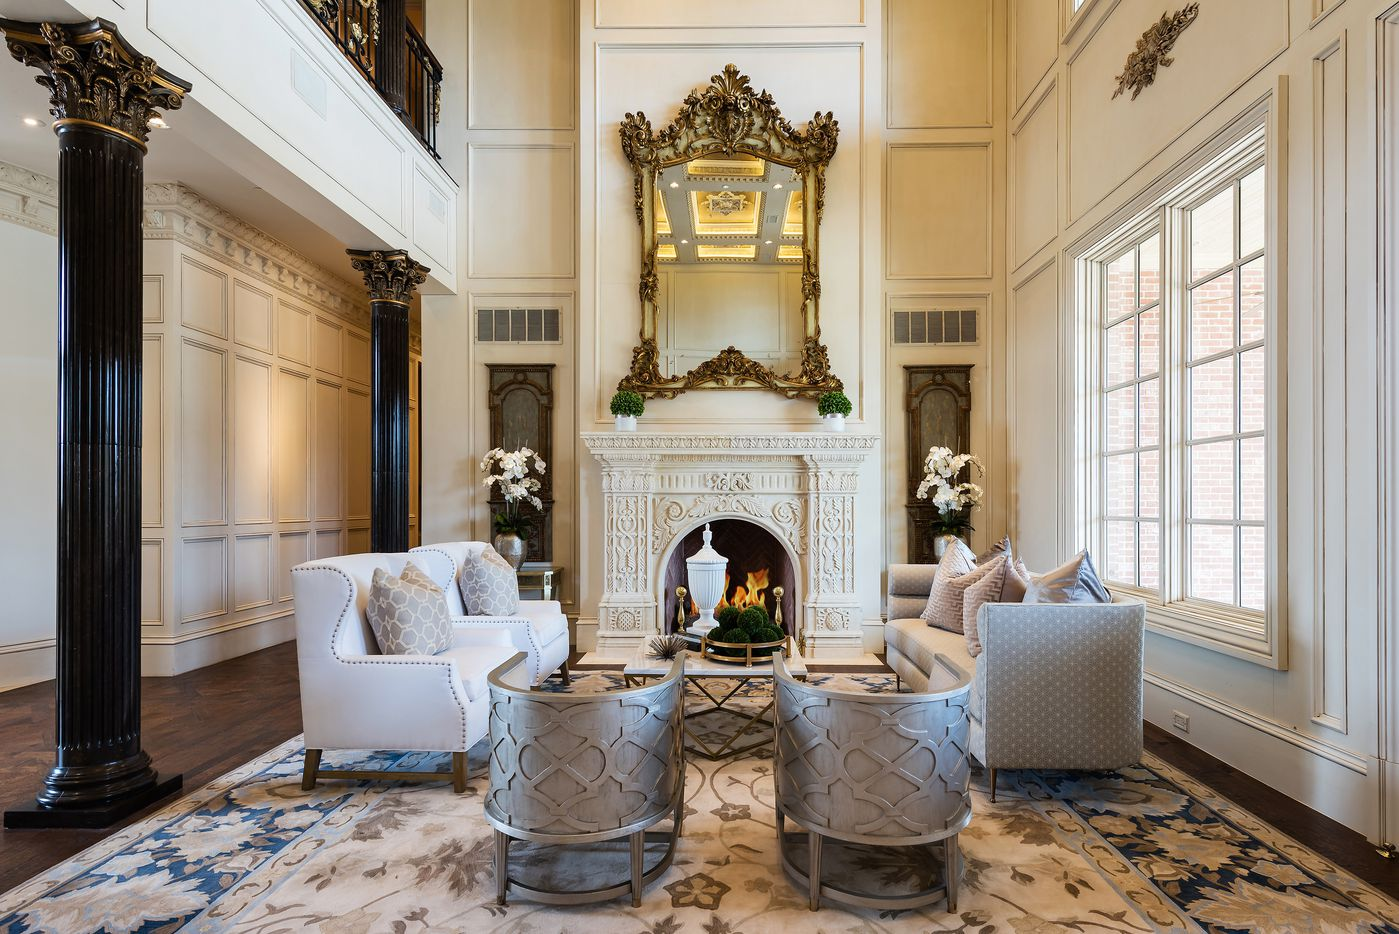 Take a look at the home at 702 S. White Chapel Blvd. in Southlake.